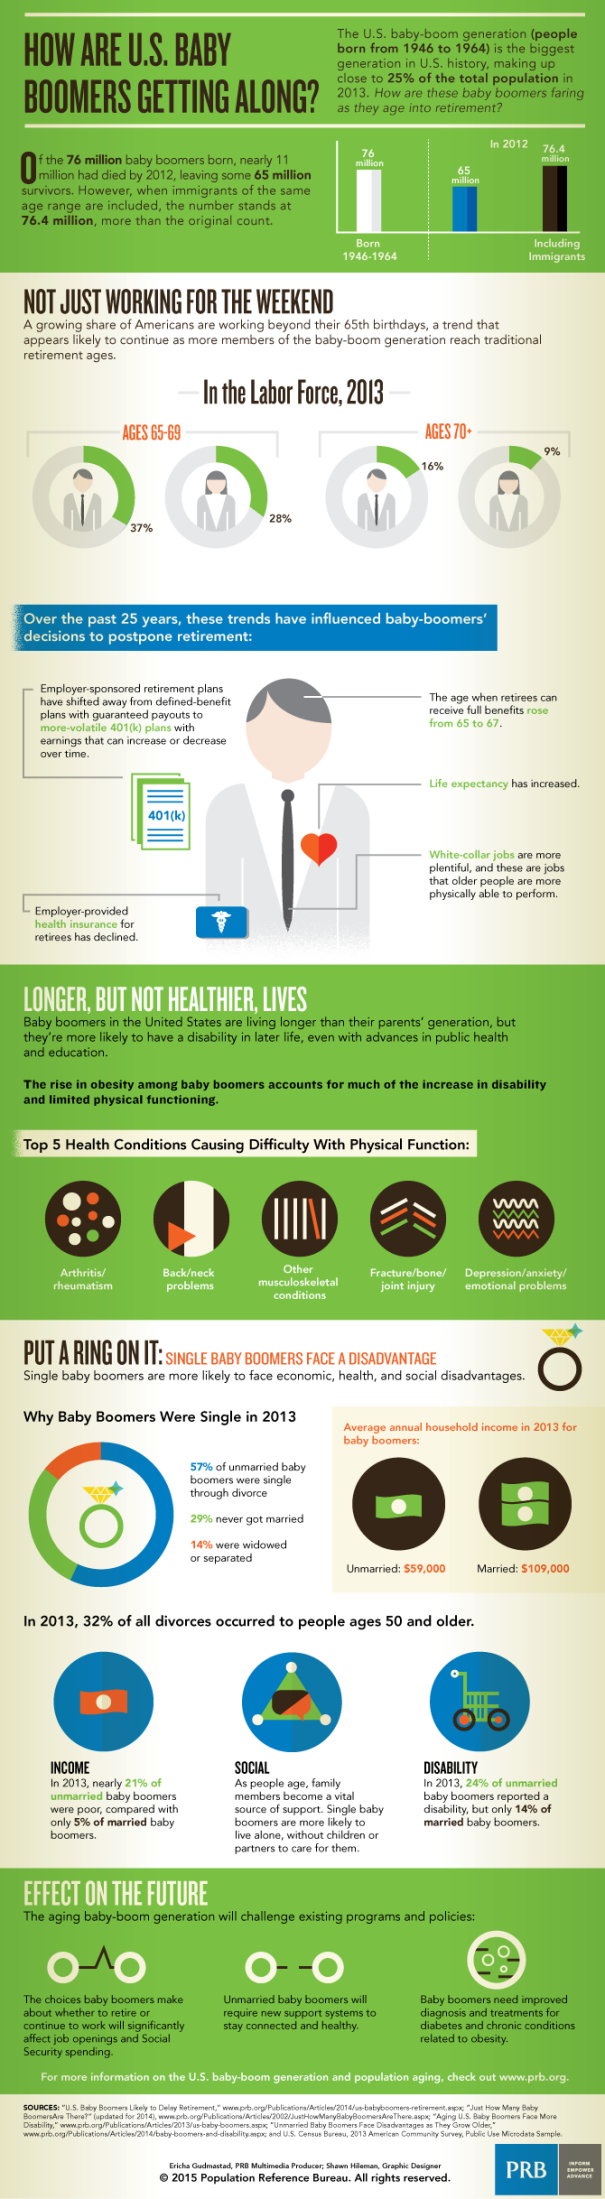 infographic-baby-boomers